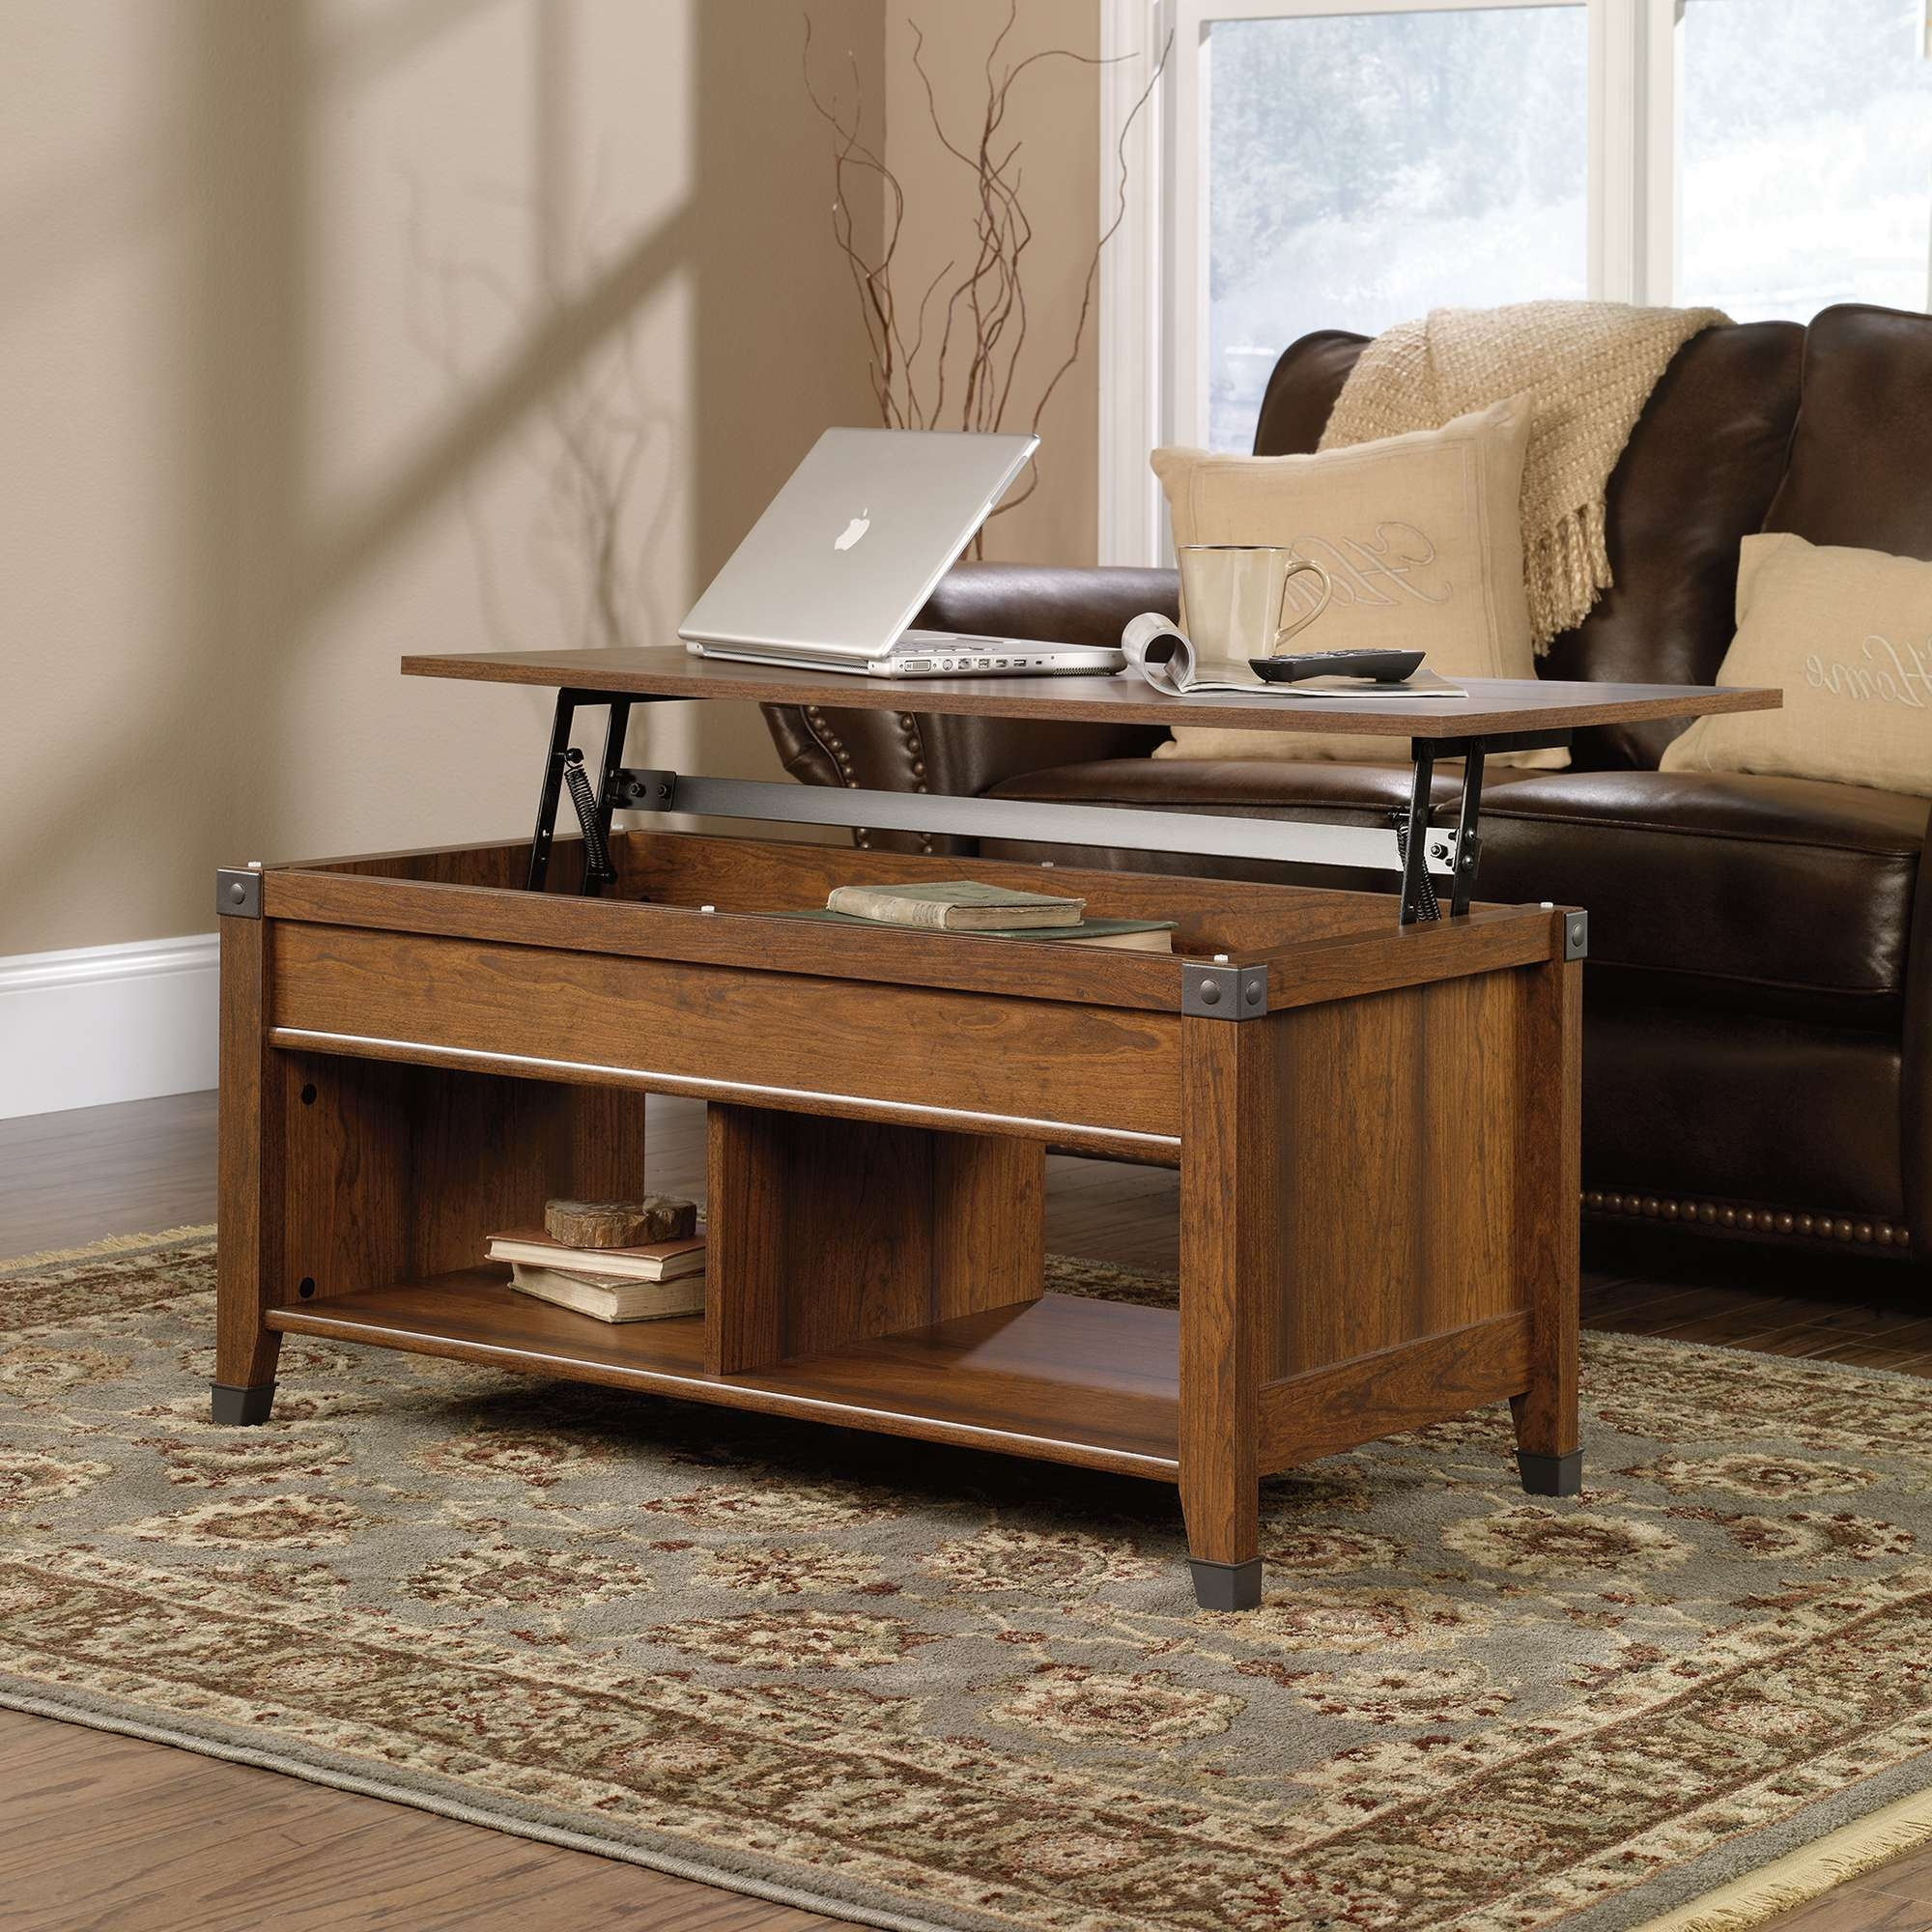 Well Liked Coffee Tables With Rising Top Intended For Coffee Table : Magnificent Coffee Table With Storage Retro Coffee (View 20 of 20)